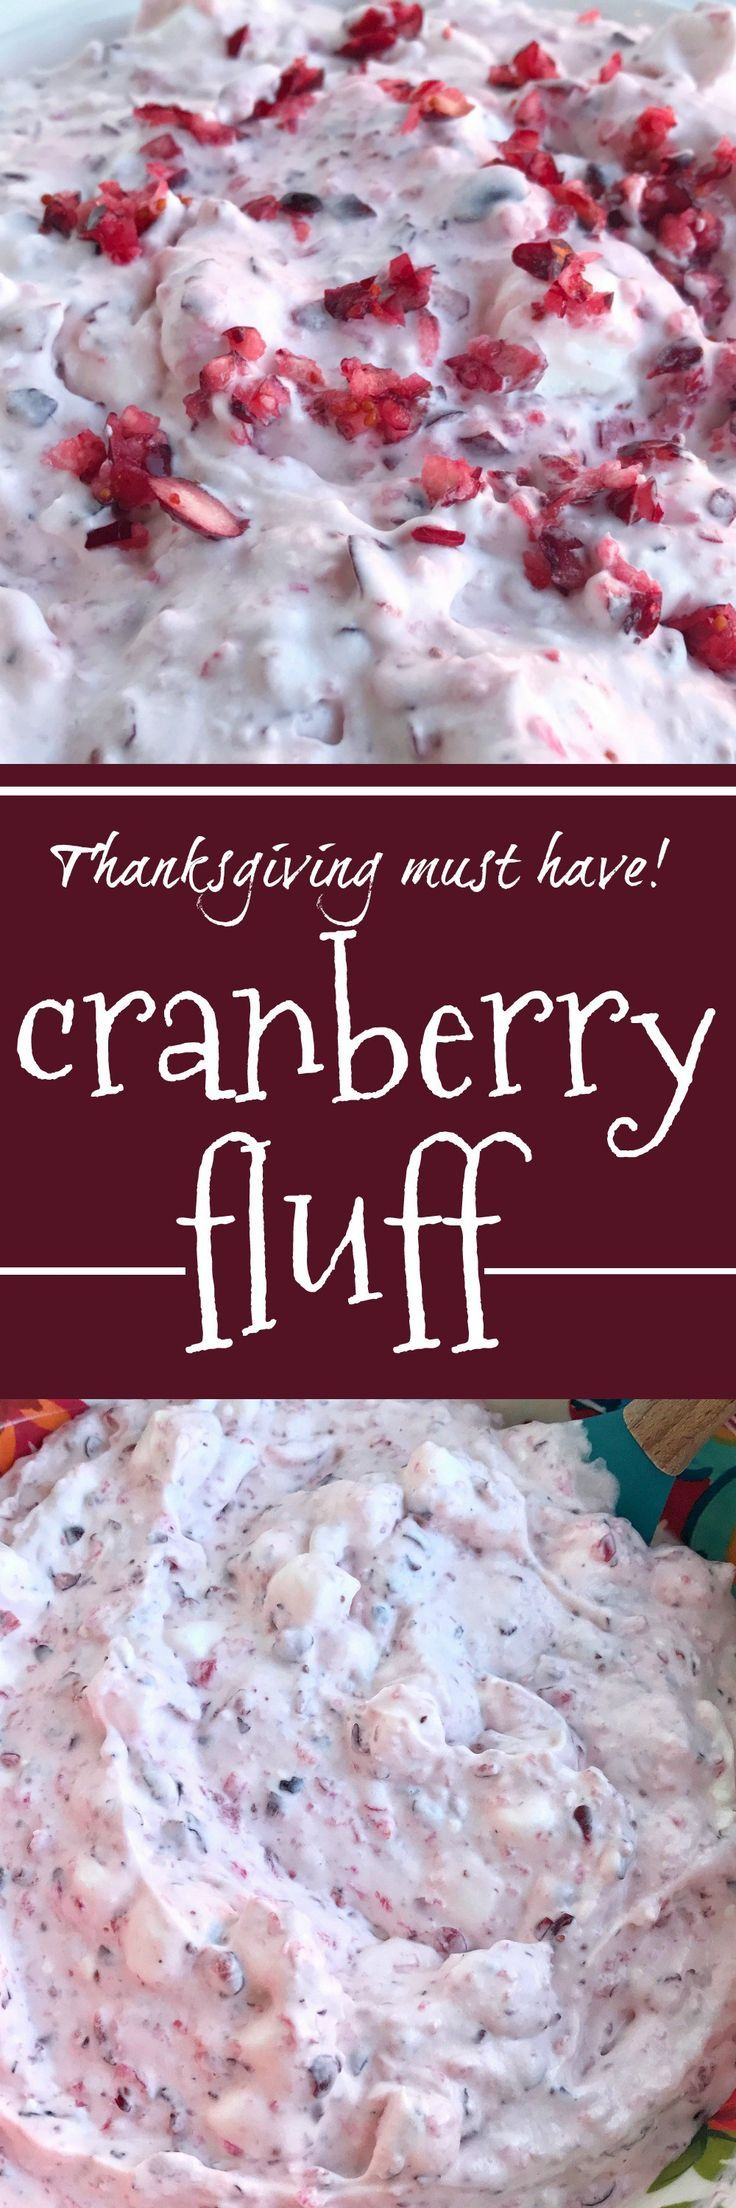 Cranberry Fluff #thanksgivingrecipessidedishes